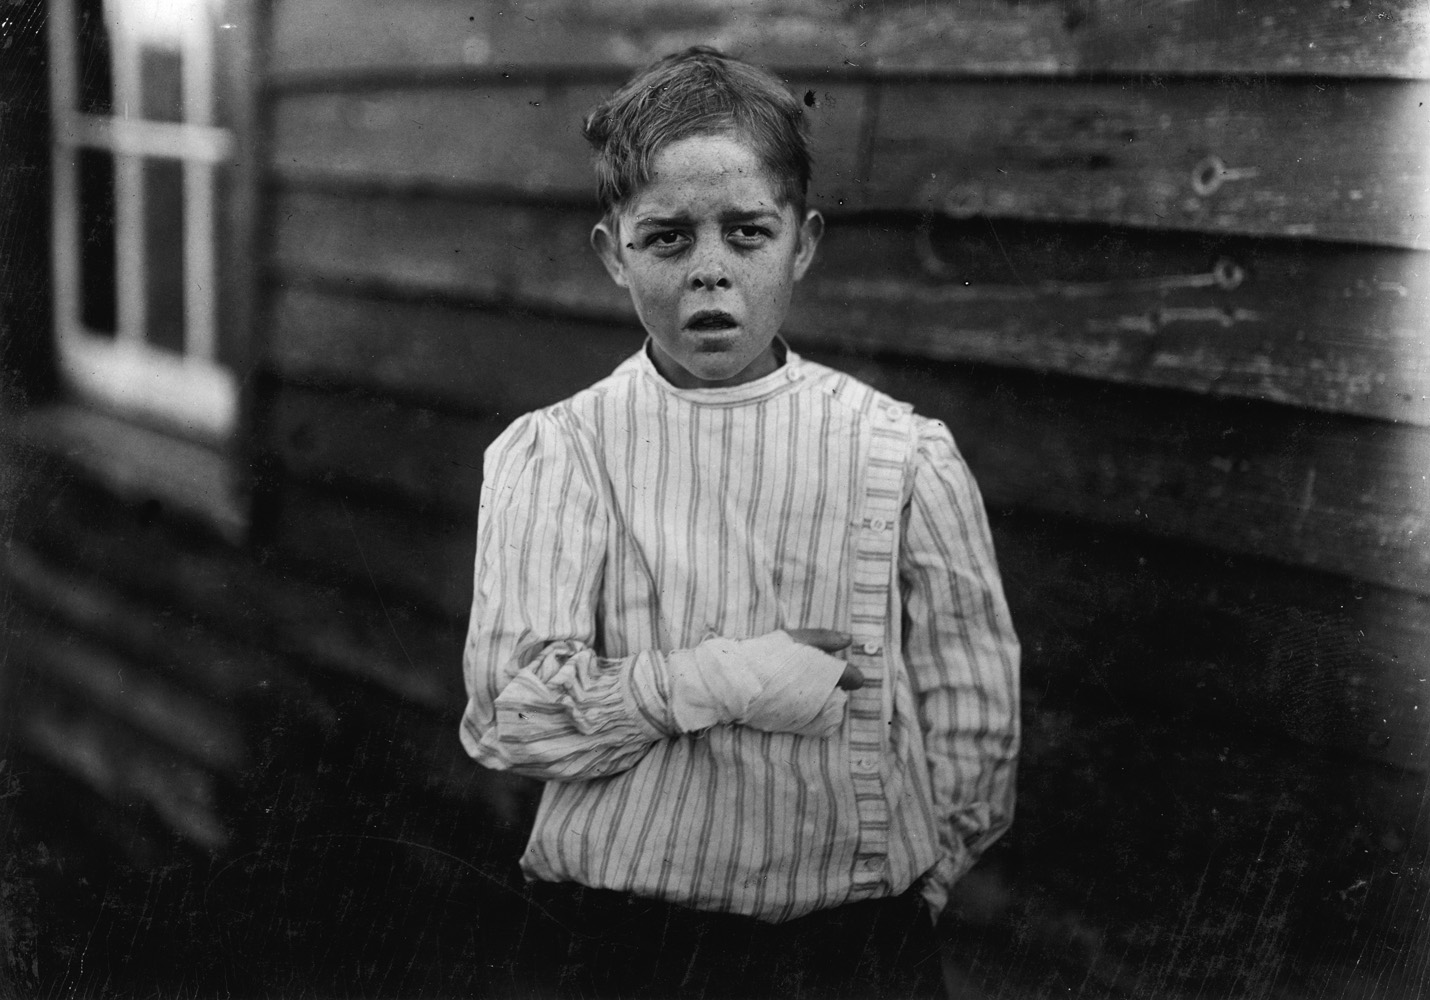 "Giles Newsom, cotton mill worker, 12 years old, Bessemer City, North Carolina, 1912. According to Lewis Hine, ""A piece of the machine fell on his foot mashing his toe. This caused him to fall onto a spinning machine and his hand went into unprotected gearing, crushing and tearing out two fingers. He told the Attorney he was 11 years old when it happened. His father, (R.L. Newsom) tried to compromise with the Company when he found the boy would receive the money and not the parents. The mother tried to blame the boys for getting jobs on their own hook, but she let them work several months. The aunt said  Now he's jes got to where he could be of some help to his ma an' then this happens and he can't never work no more like he oughter.  He died at the age of 18. He was buried in an unmarked grave, and his name was badly misspelled on his death certificate."